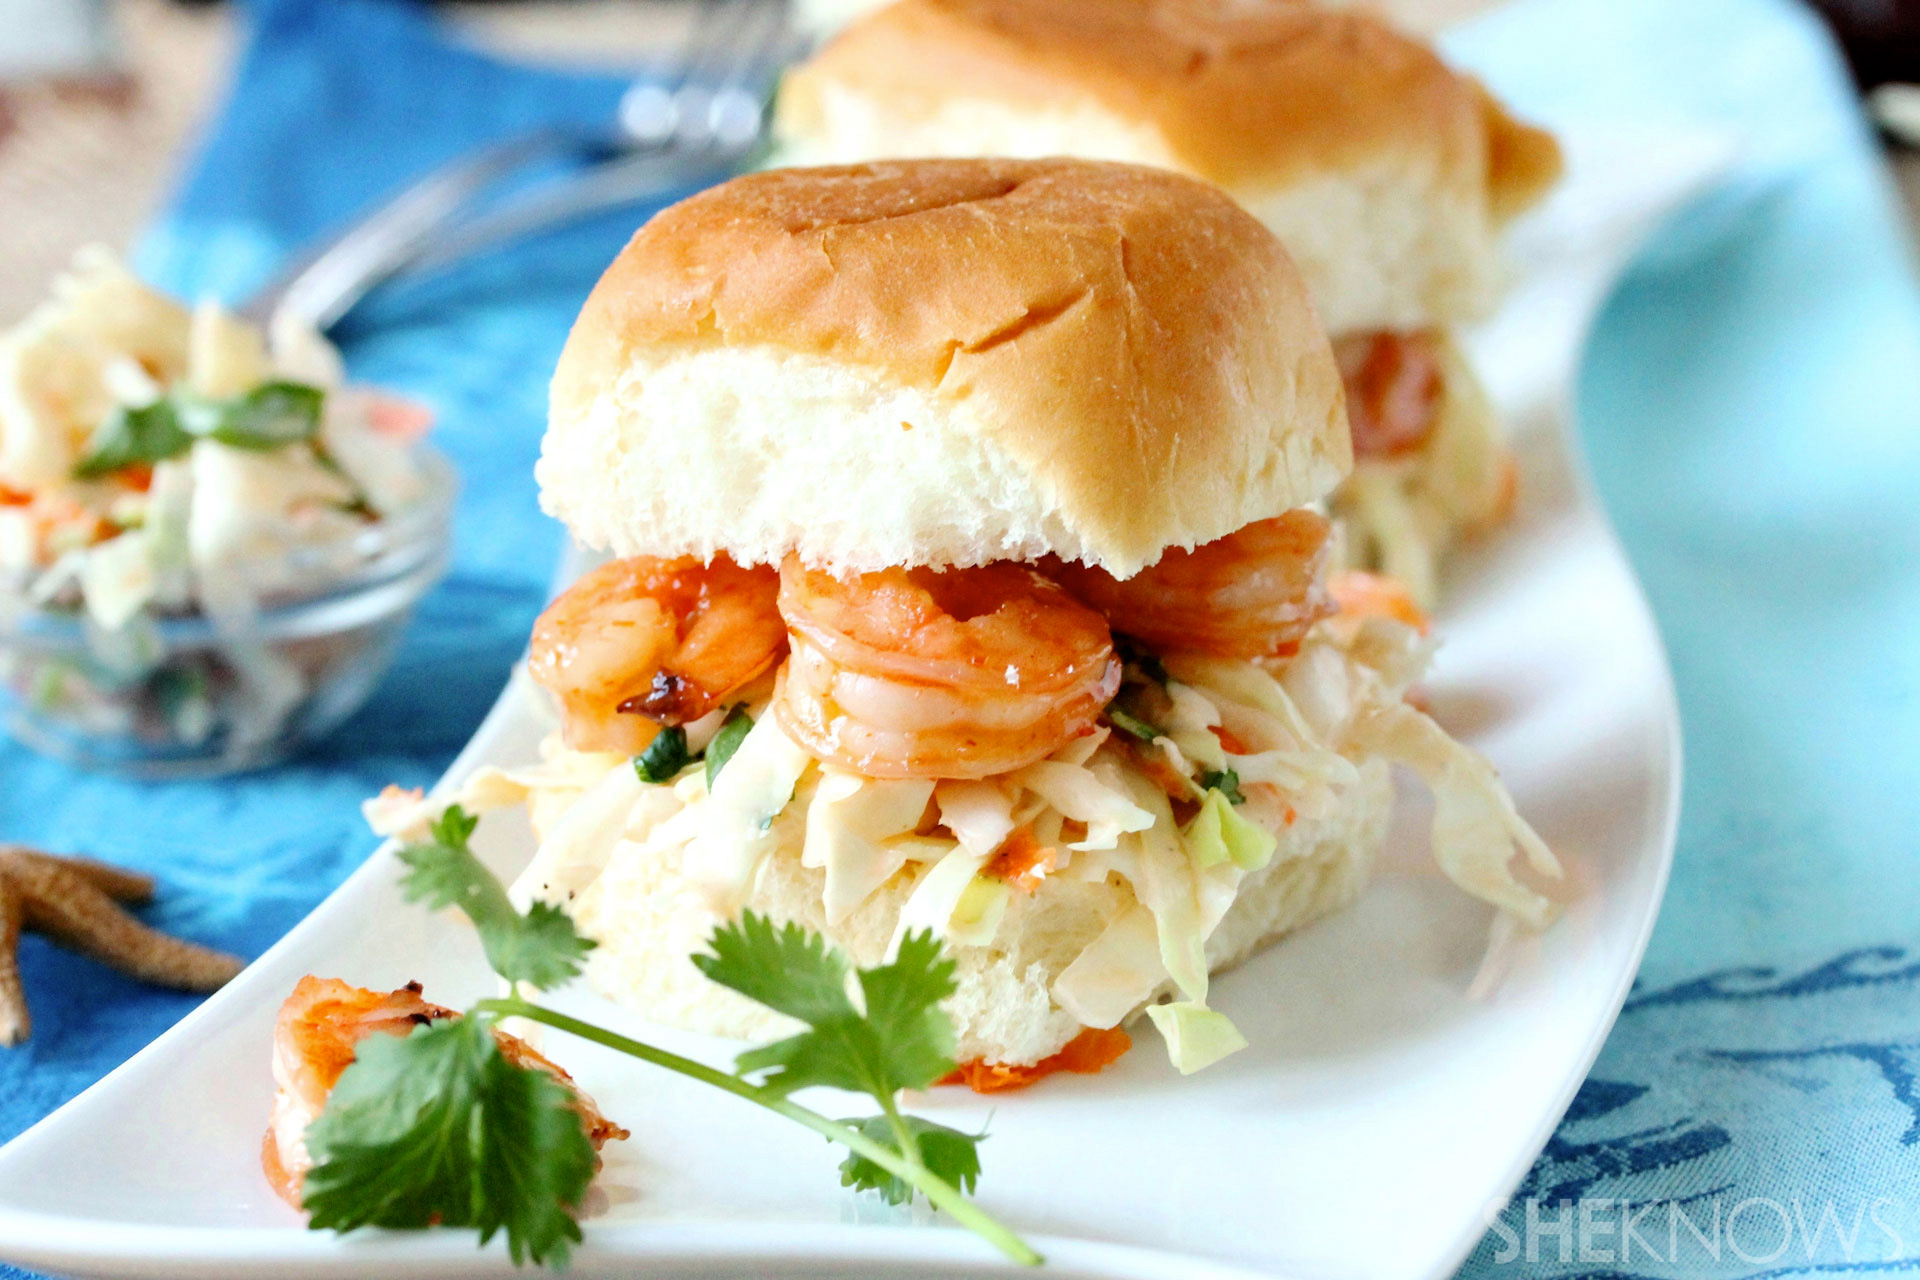 The perfect end-of-summer appetizer comes in the form of cole slaw-topped shrimp sliders